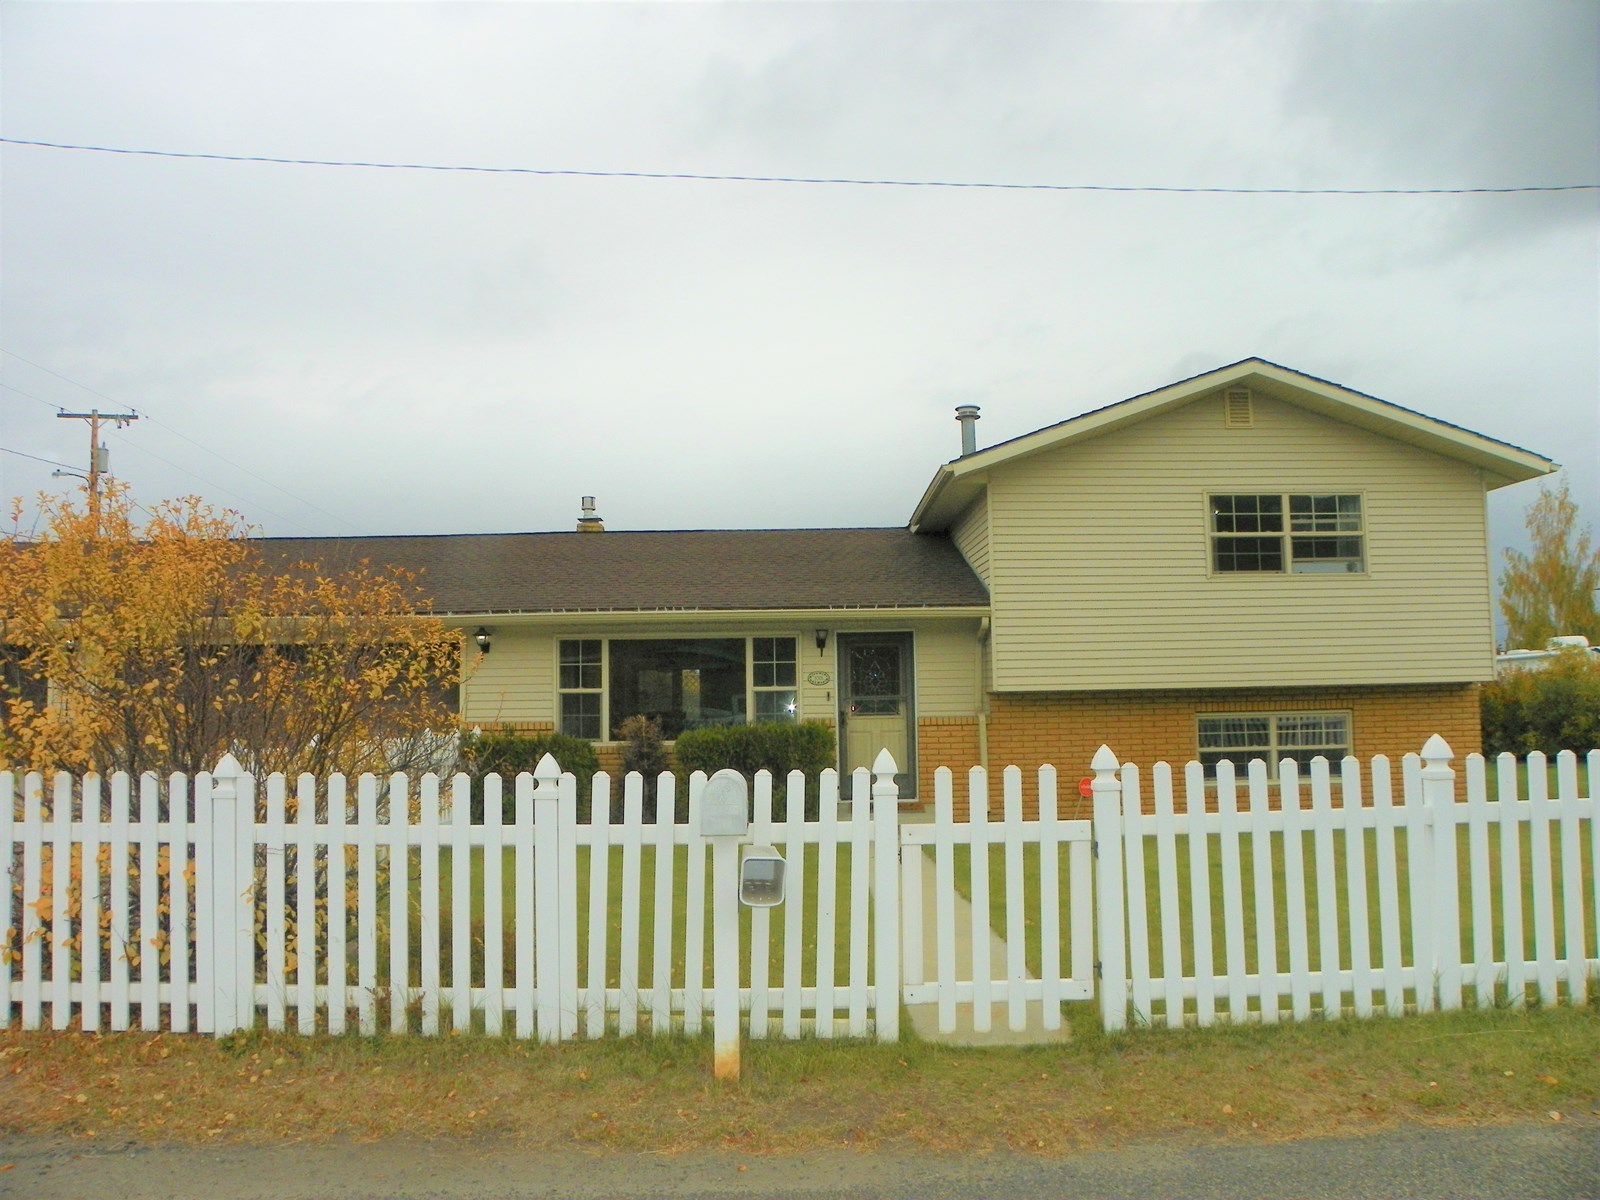 4 bed, 2 bath, House and Large garage for sale in Butte MT